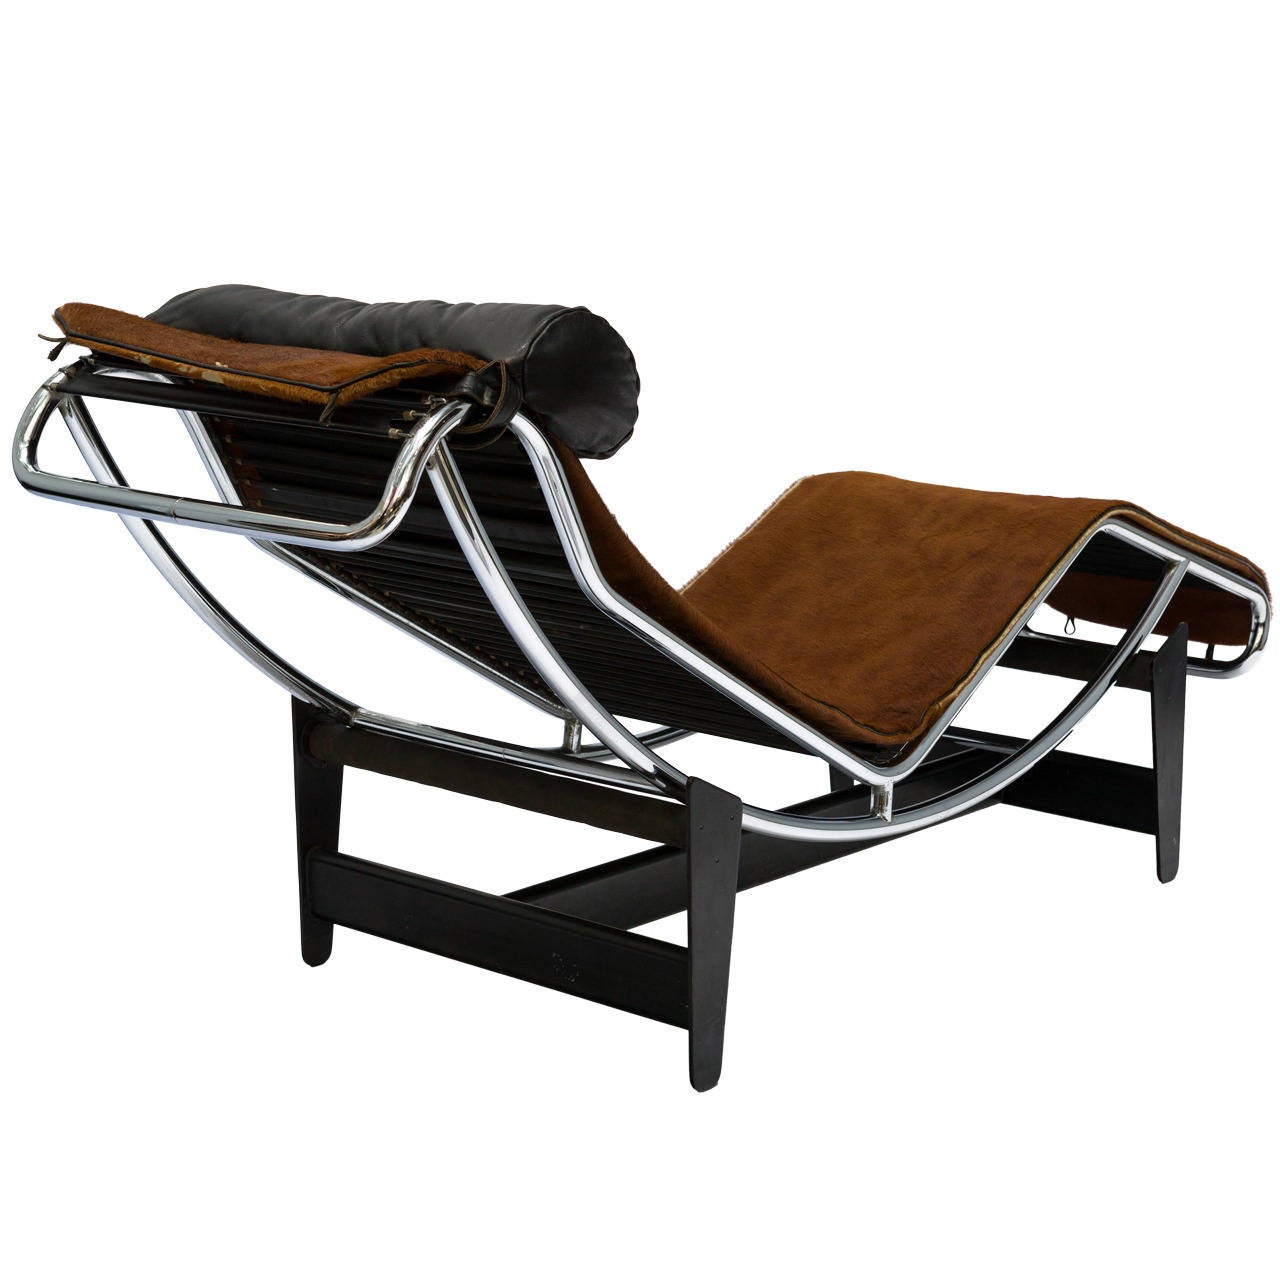 Le corbusier lc4 chaise lounge chair in cowhide for sale for Chaise longe le corbusier